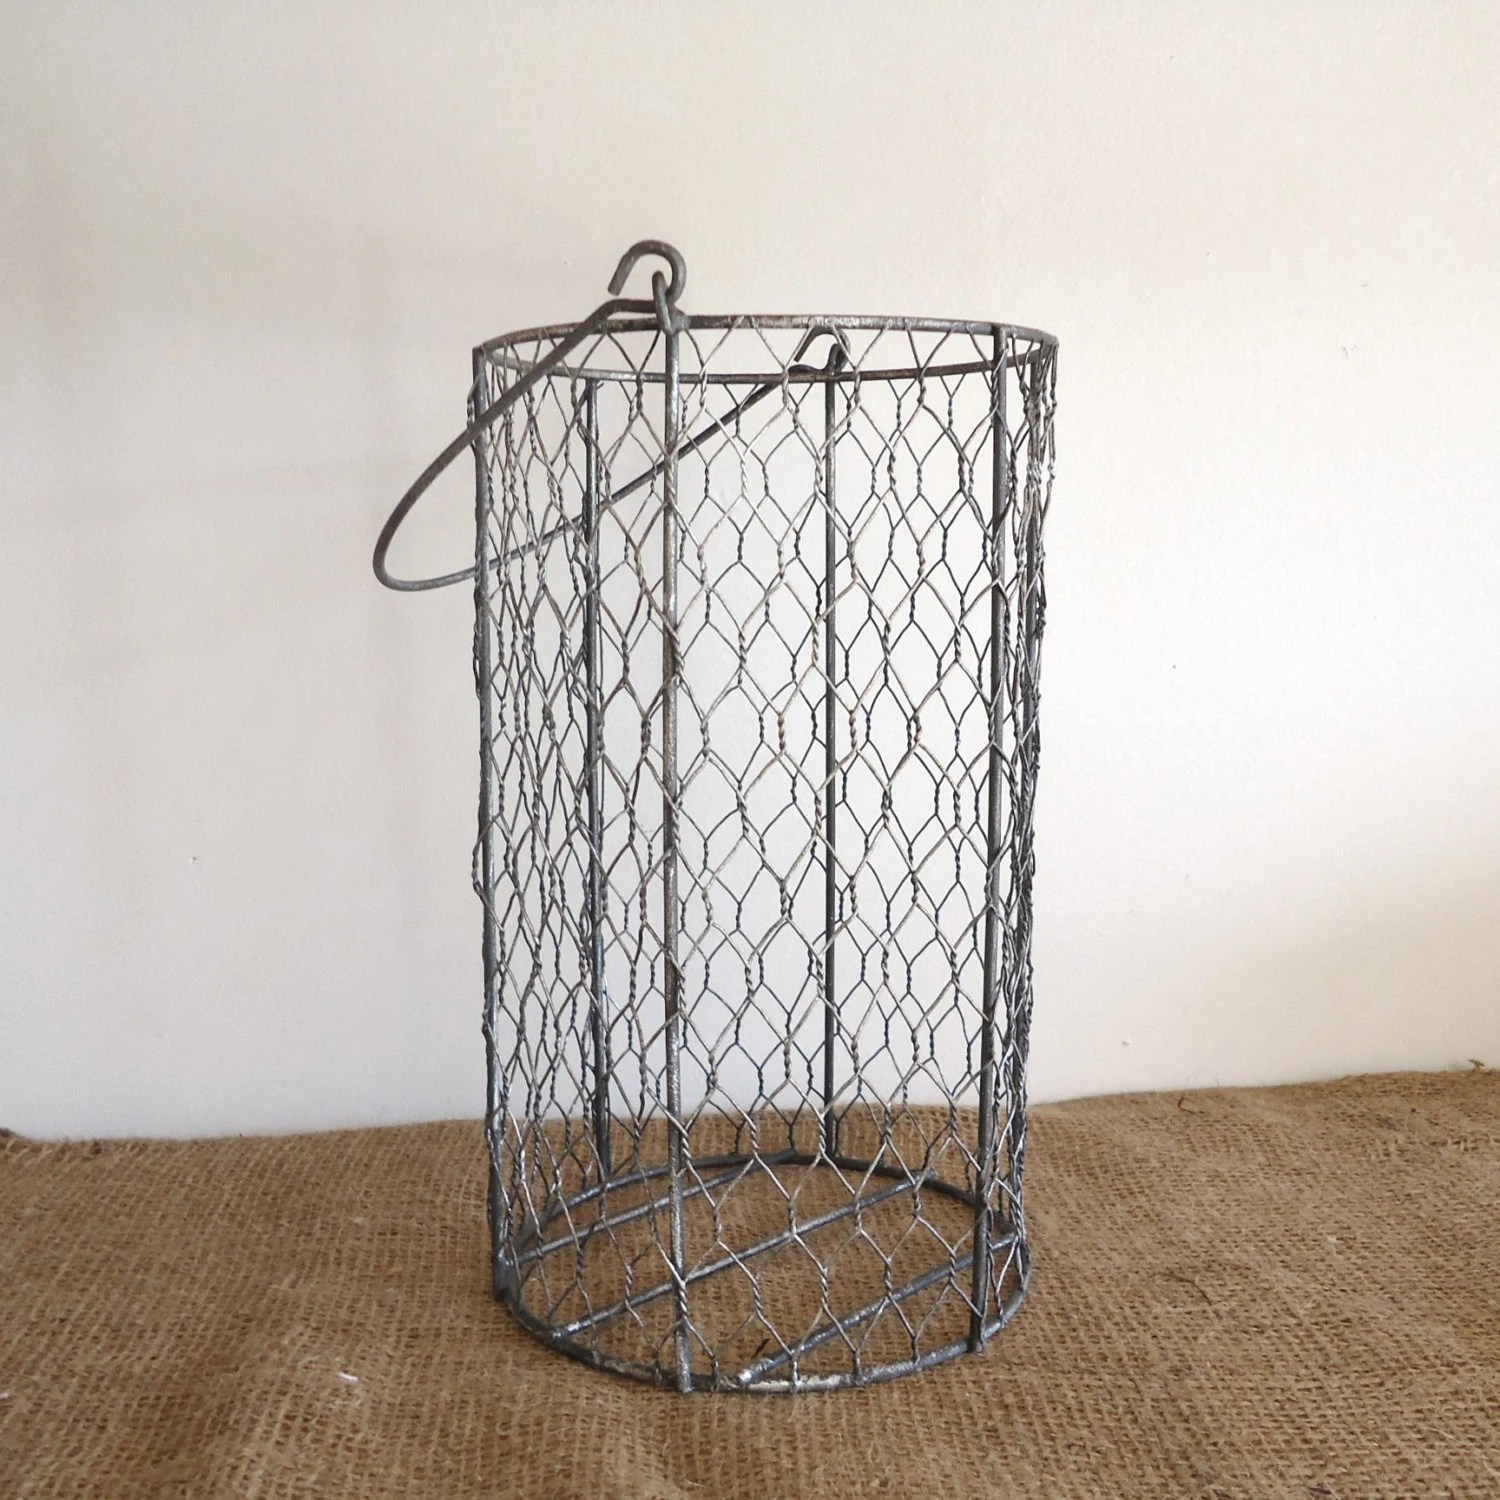 Drahtkorb Garten Vintage Wire Basket Garden Chicken Wire Basket Bathroom